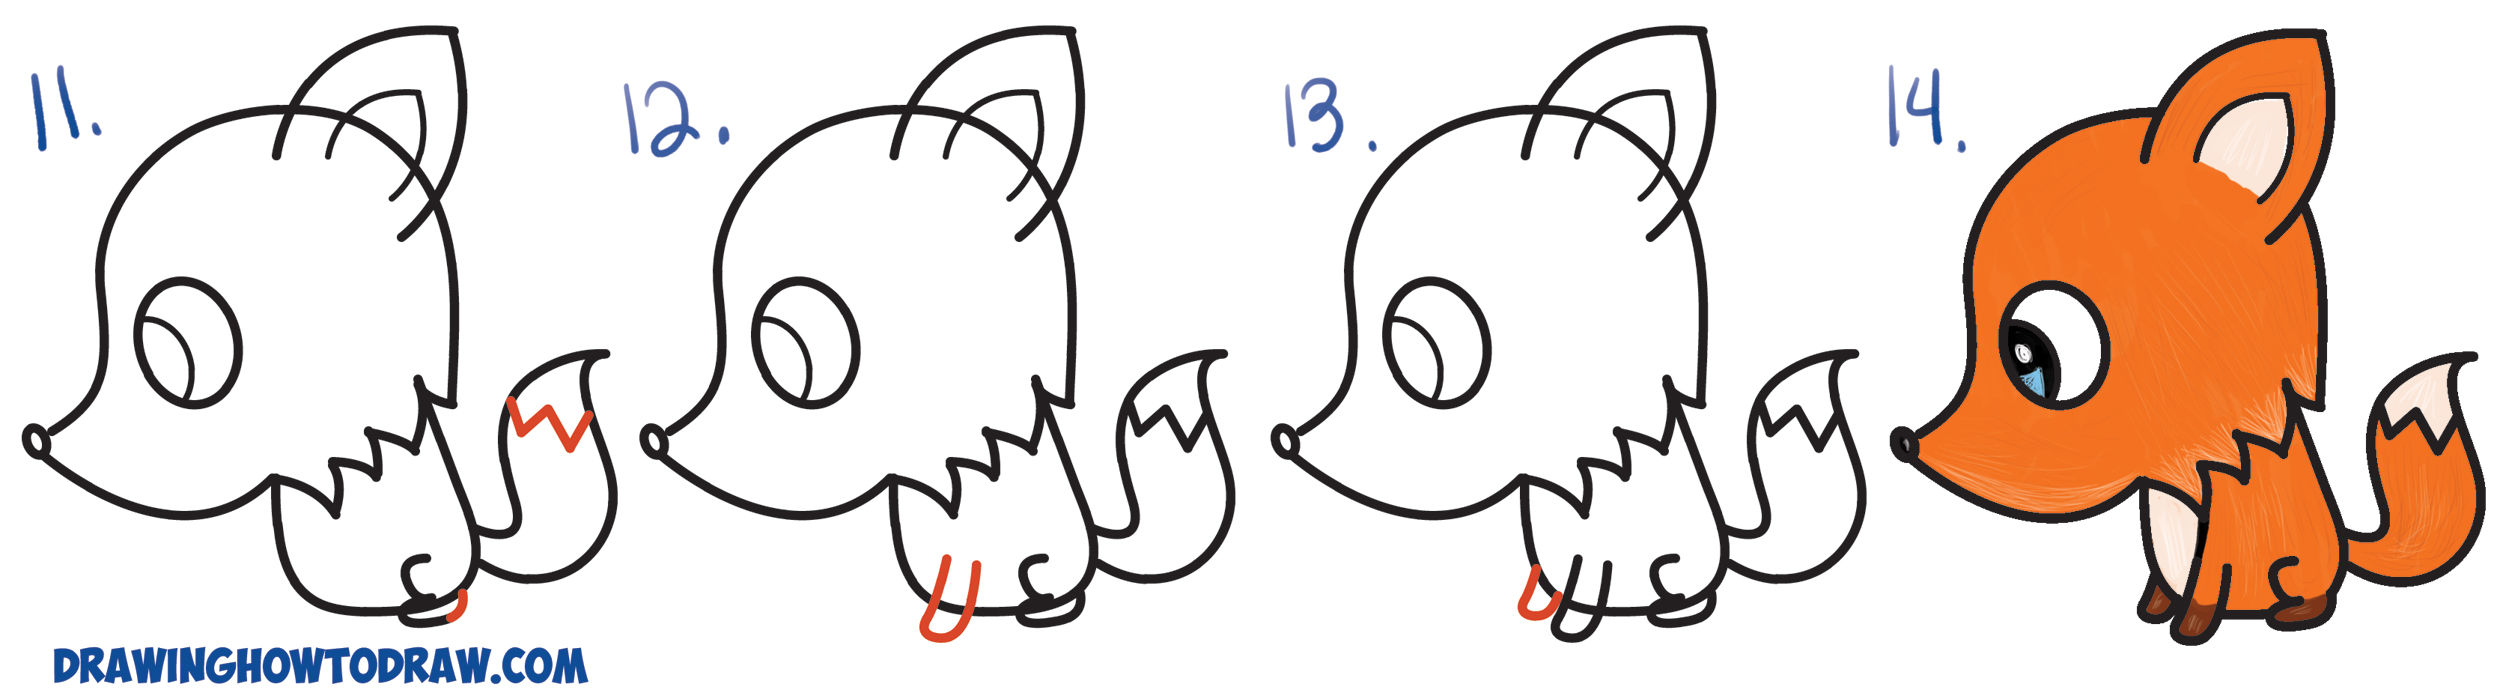 how to draw a cute cartoon fox from a question mark kawaii